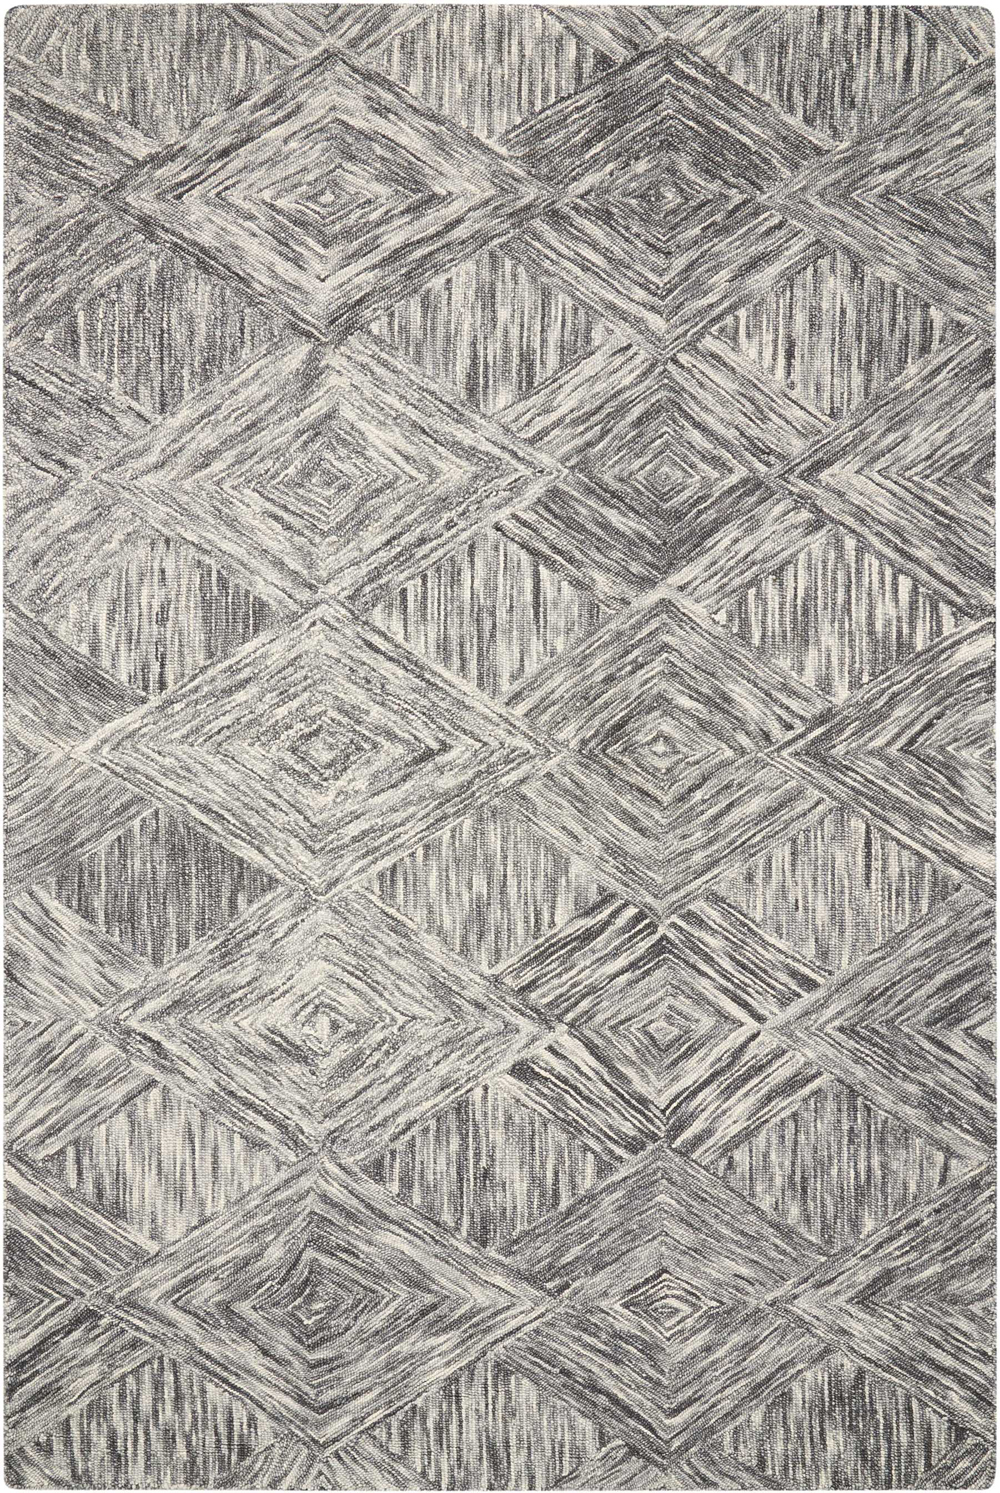 Nourison INTERLOCK ITL01 CHARCOAL Rug